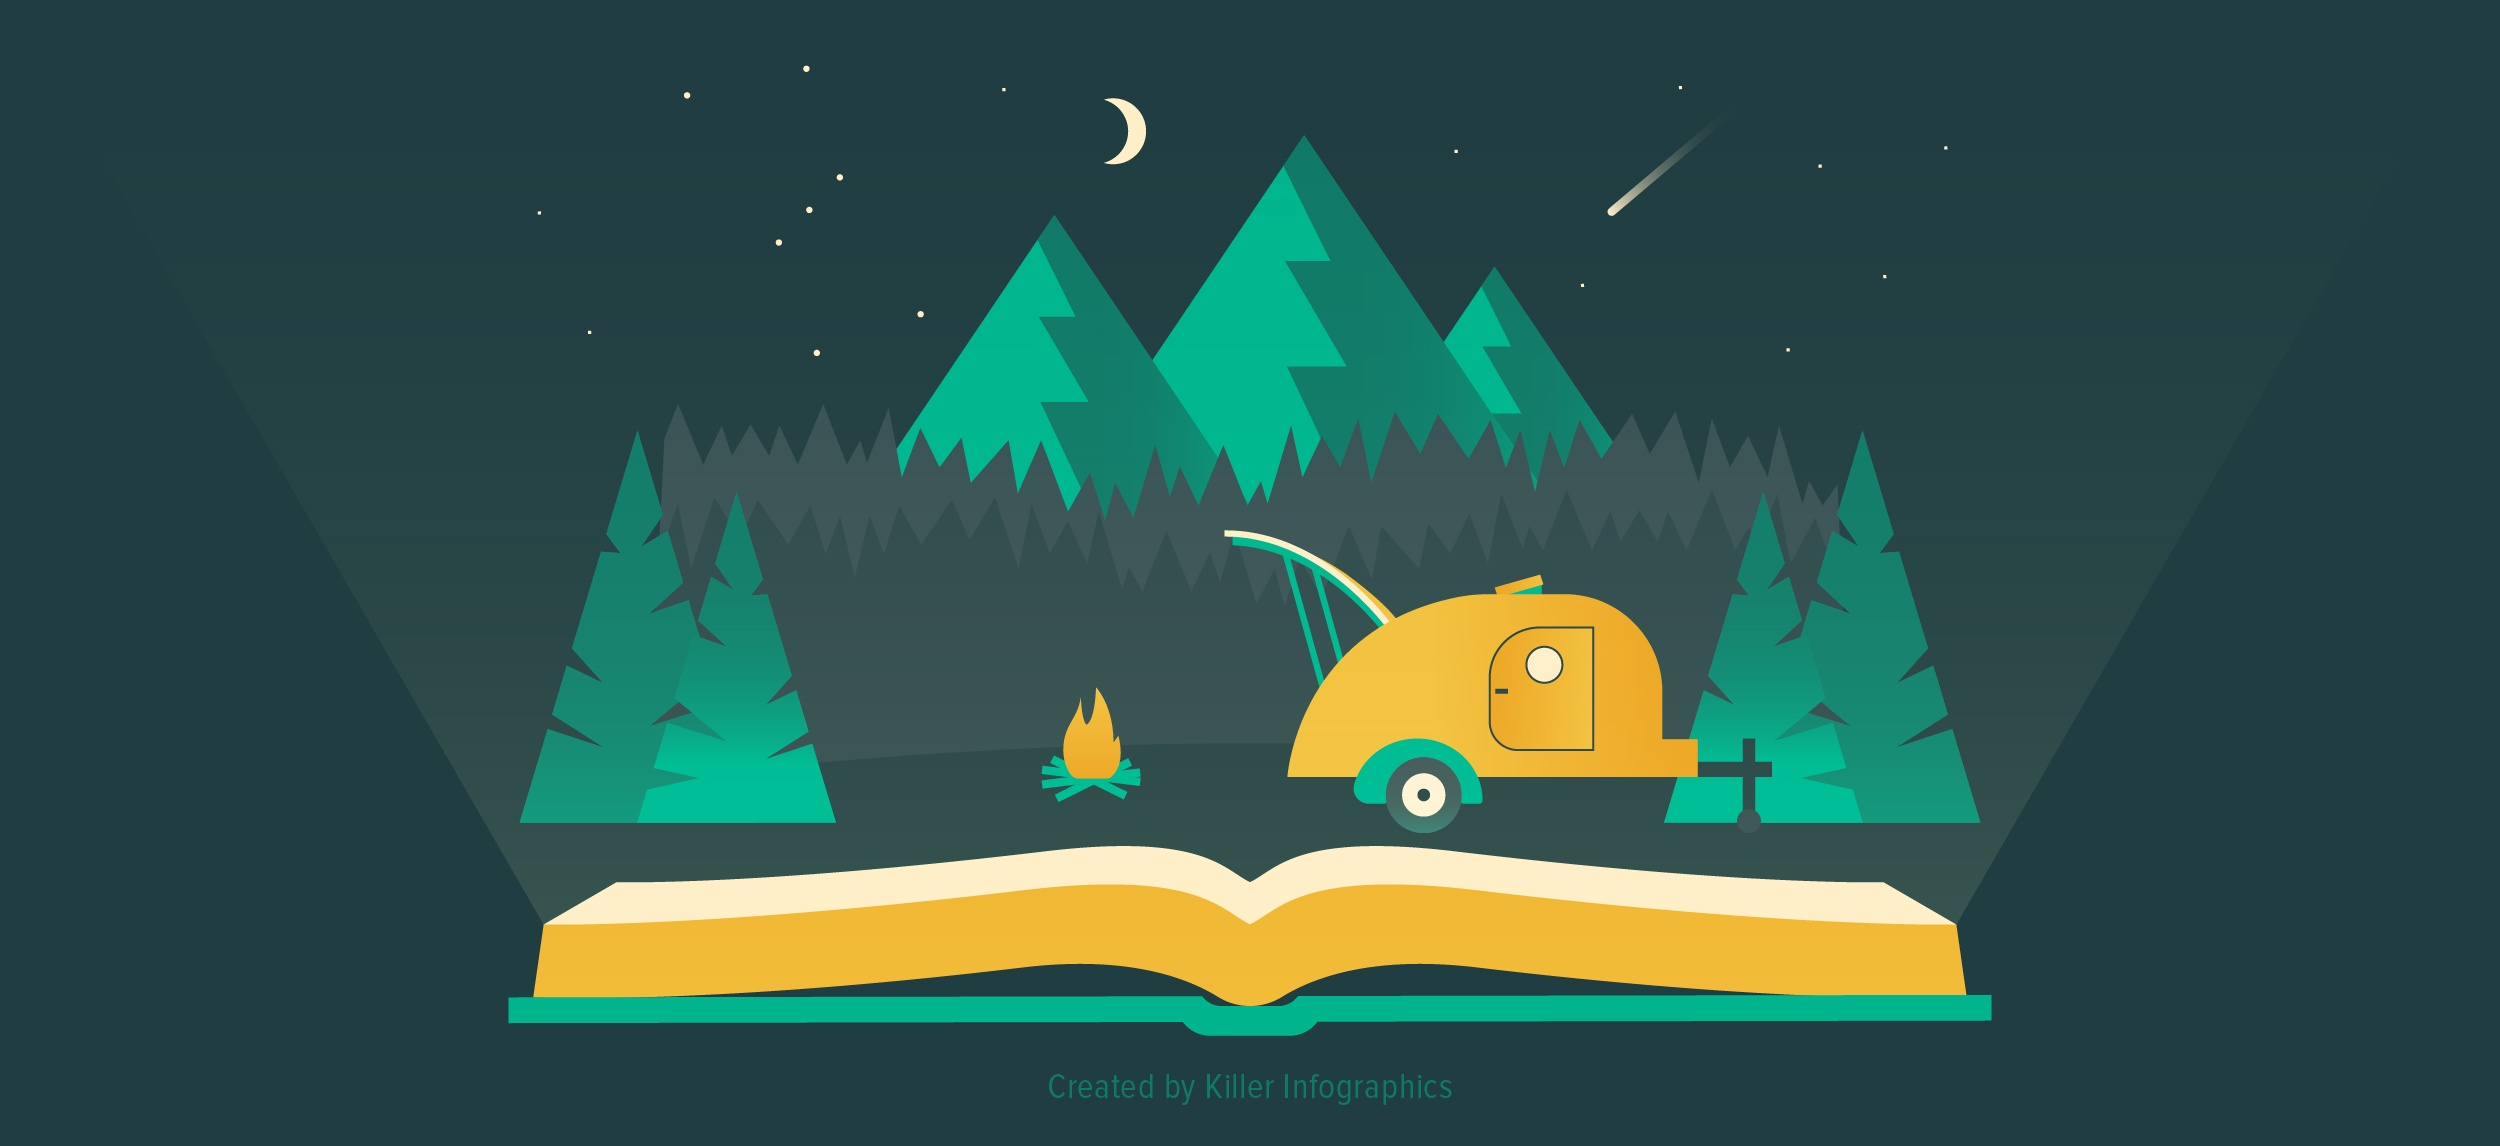 A nighttime camping scene that appears to come out of a story book